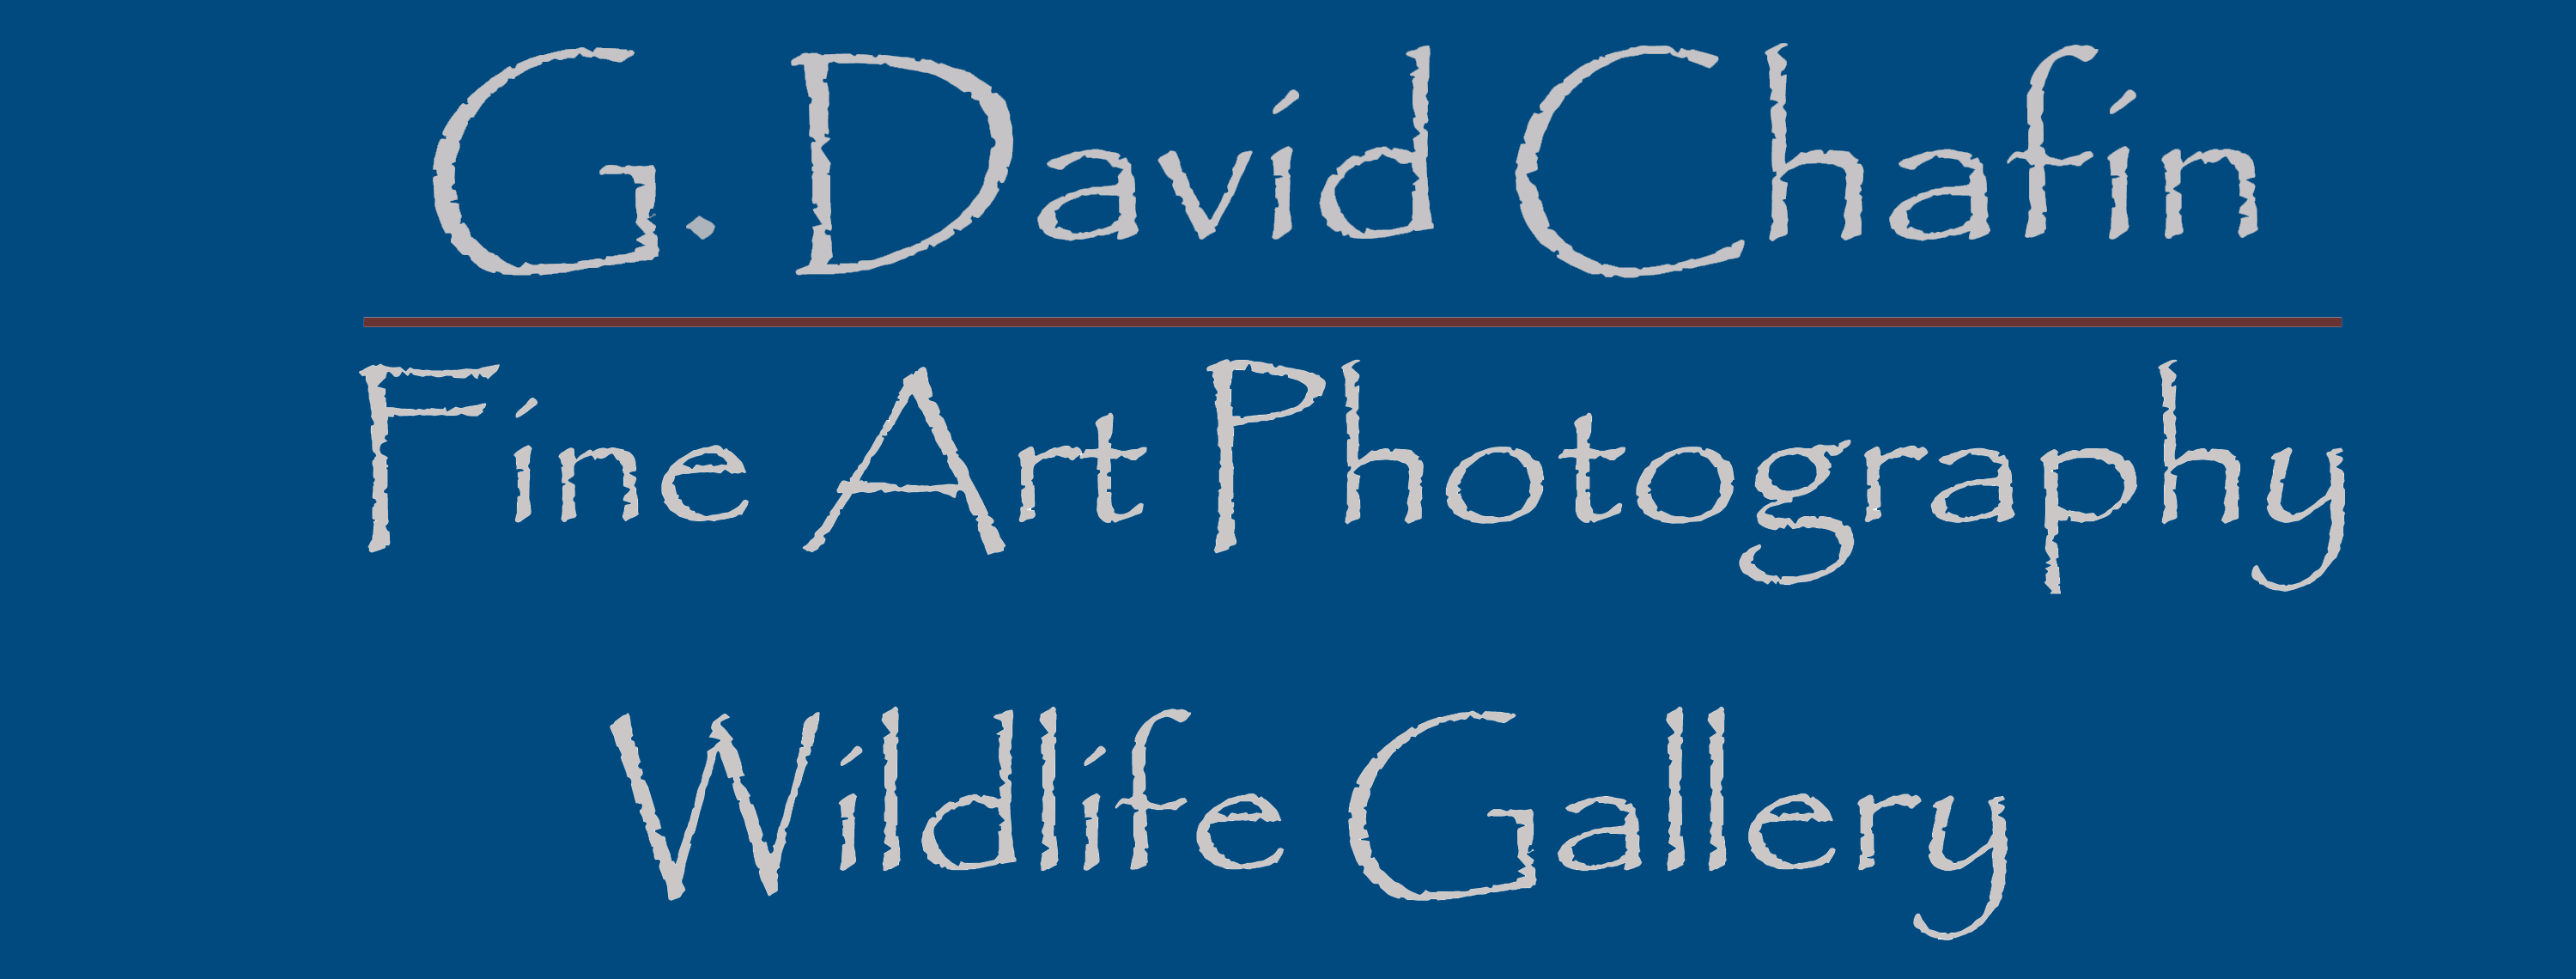 G. David Chafin Fine Art Photography